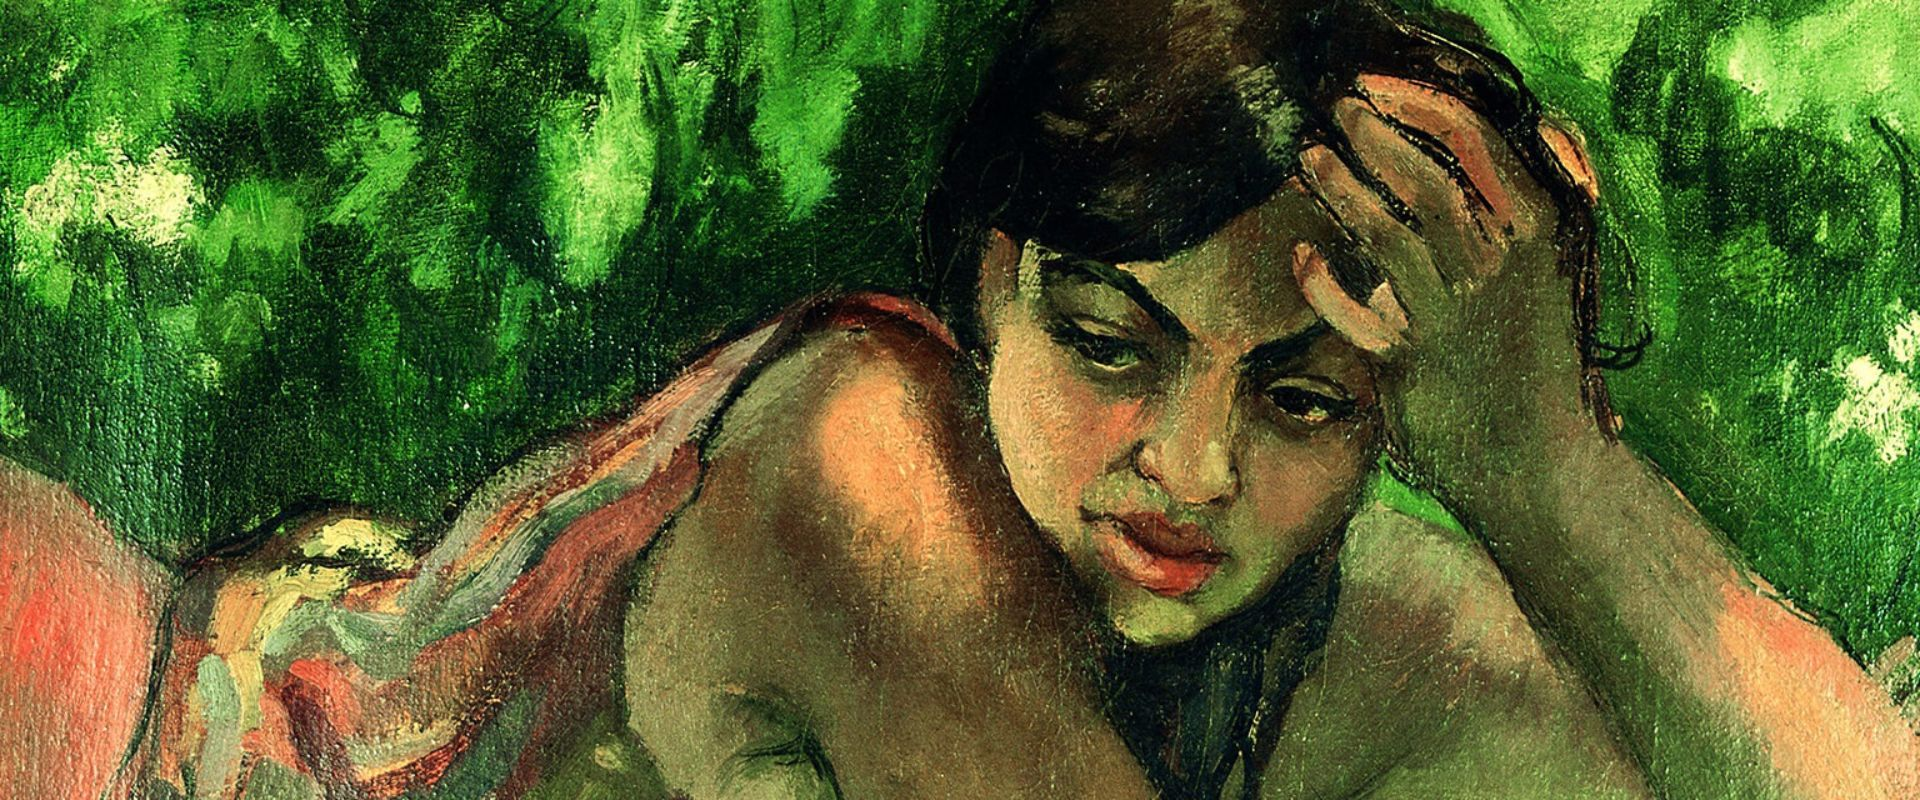 Amrita Sher-Gil Paintings Artworks Collection | Buy Posters, Frames, Canvas, Digital Art & Large Size Prints Of The Famous Modern Master's Artworks